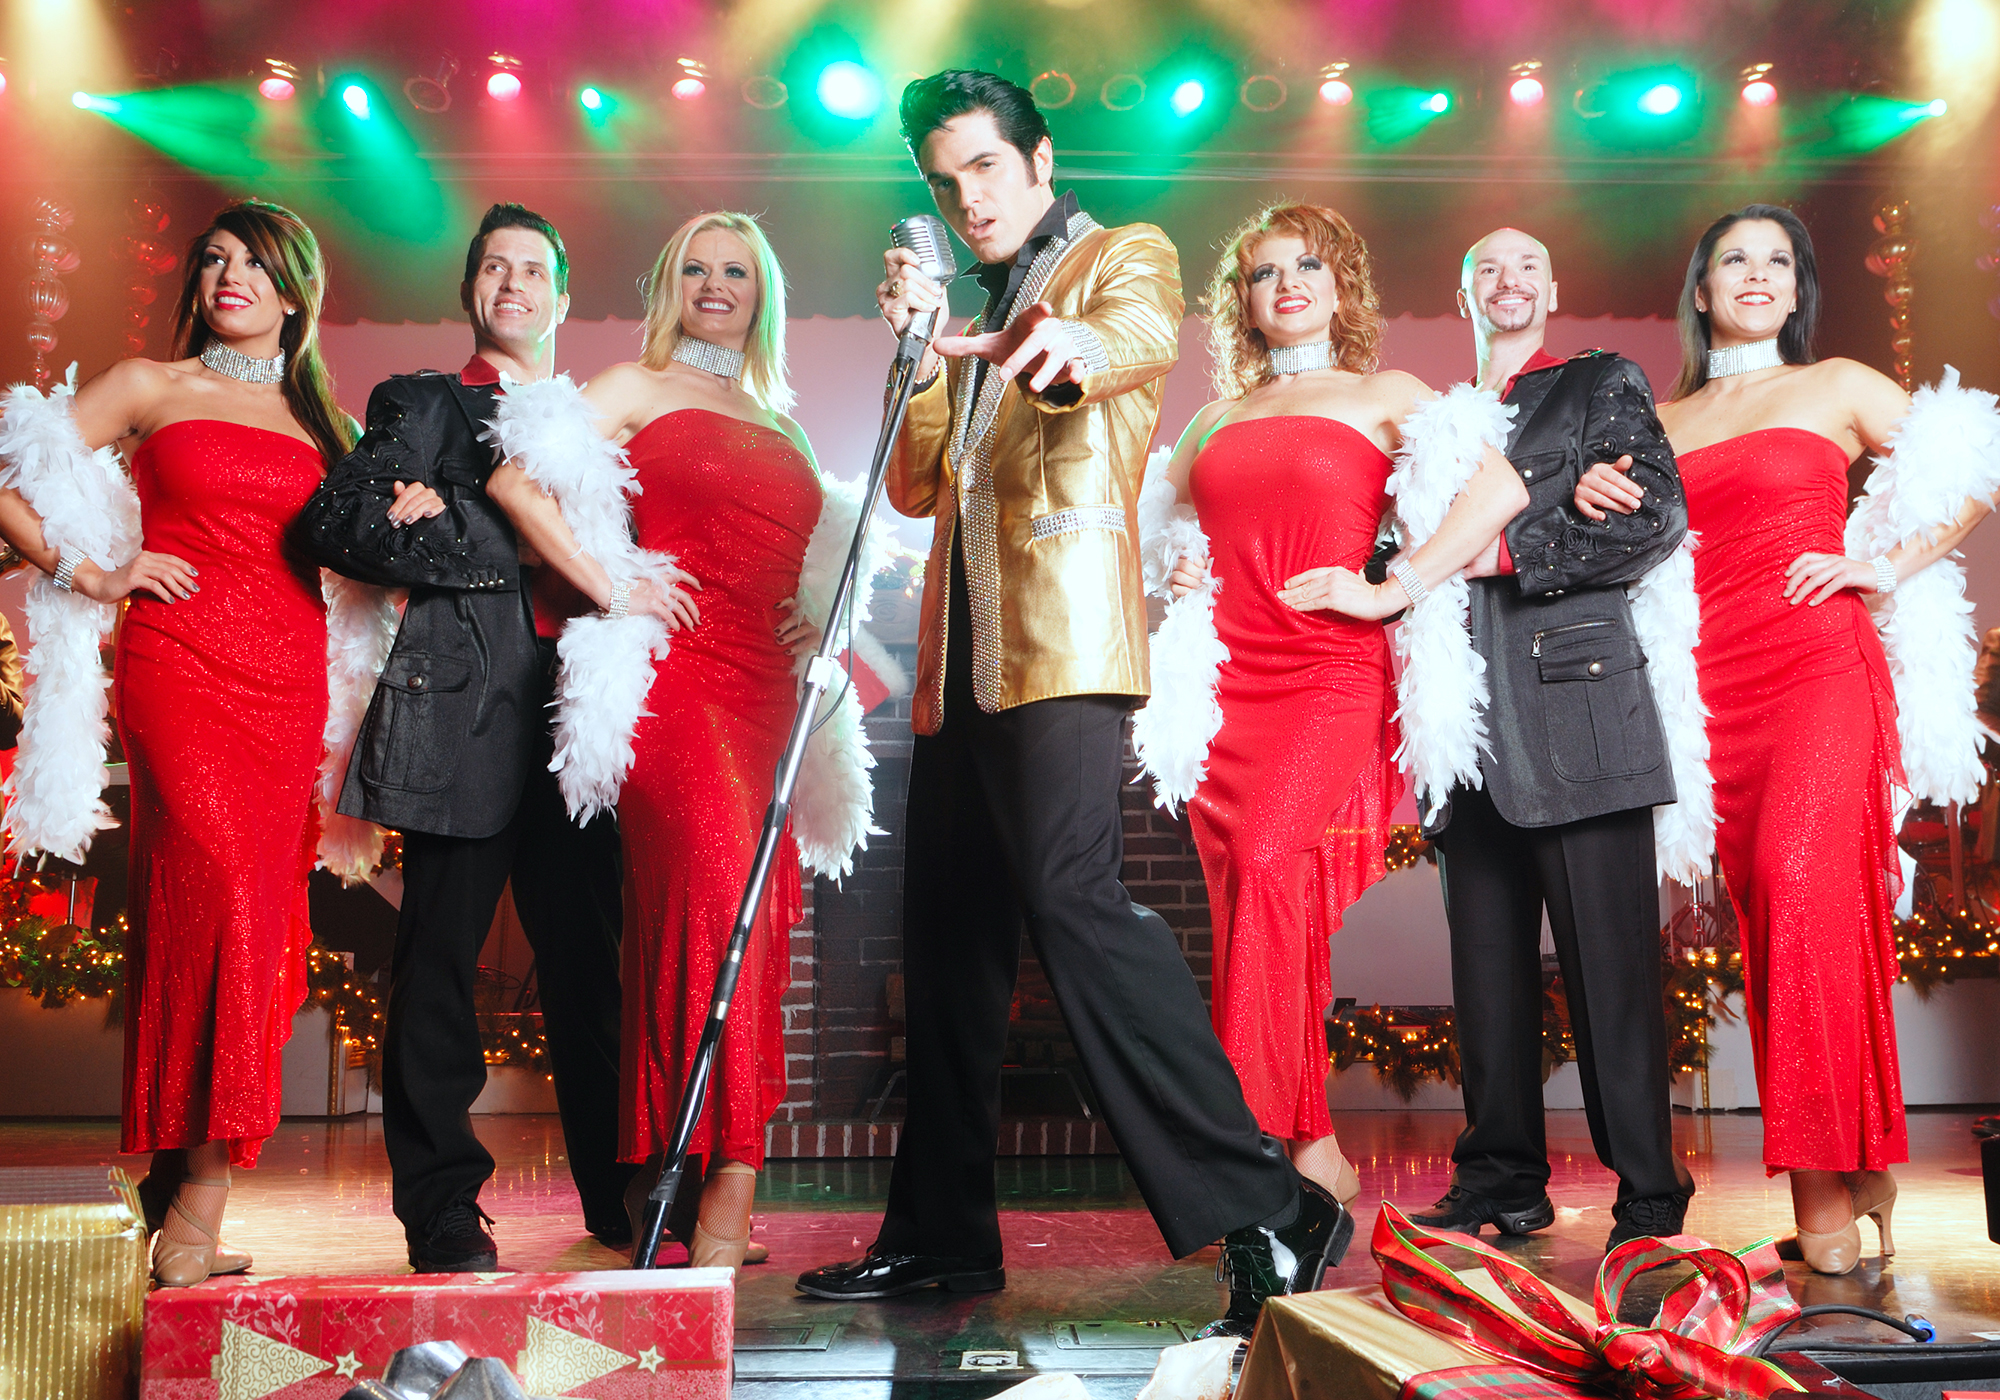 Christmas show in Branson, Missouri